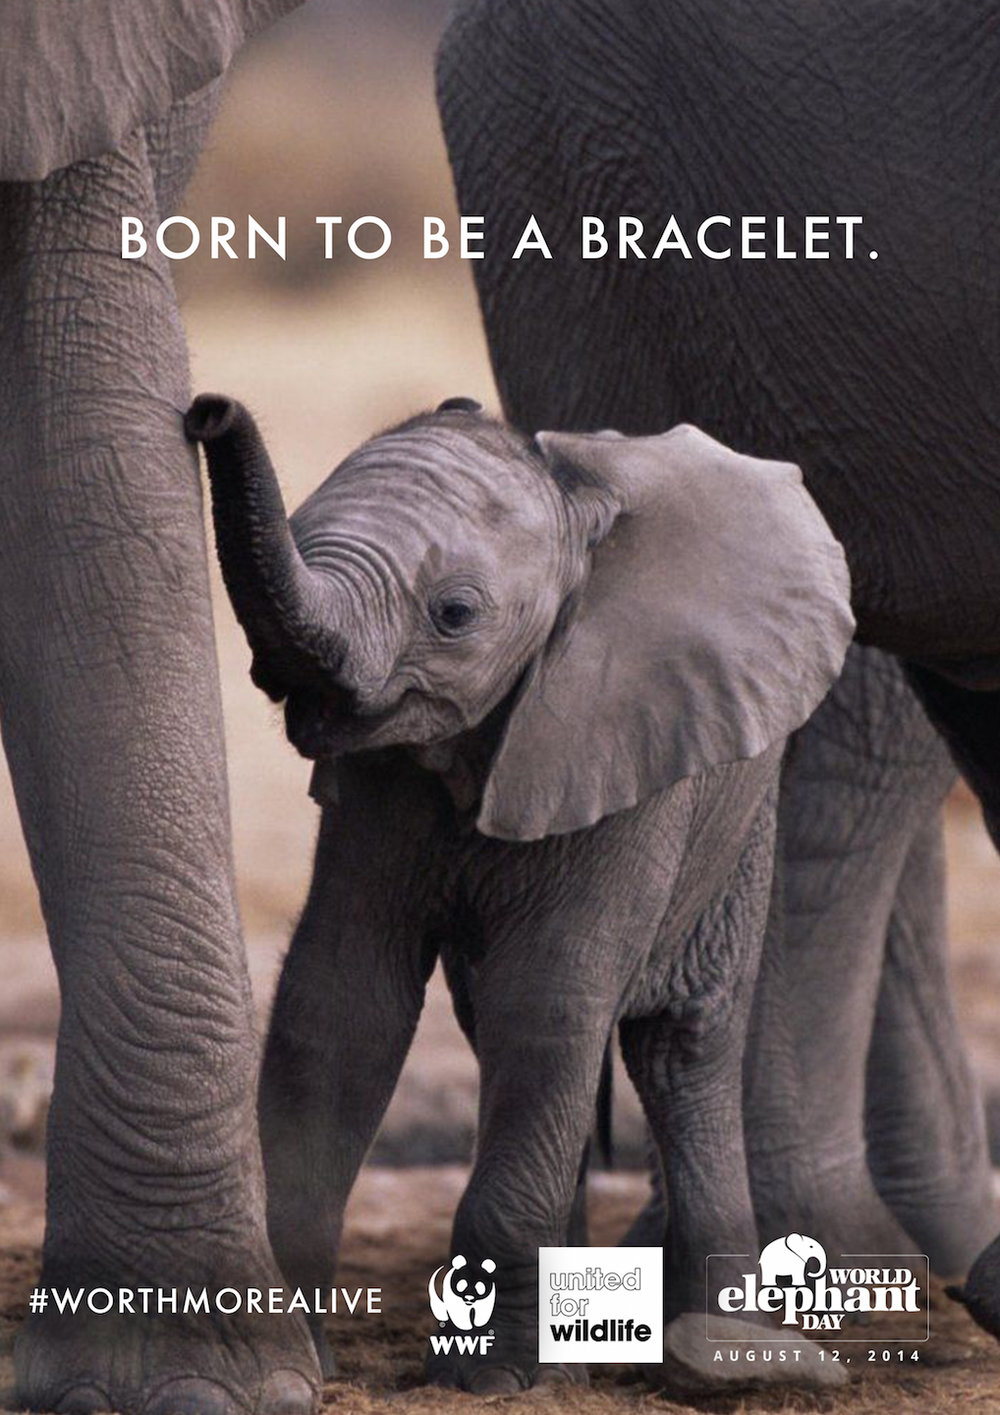 WINNER   BRIEF:  WORLD ELEPHANT DAY